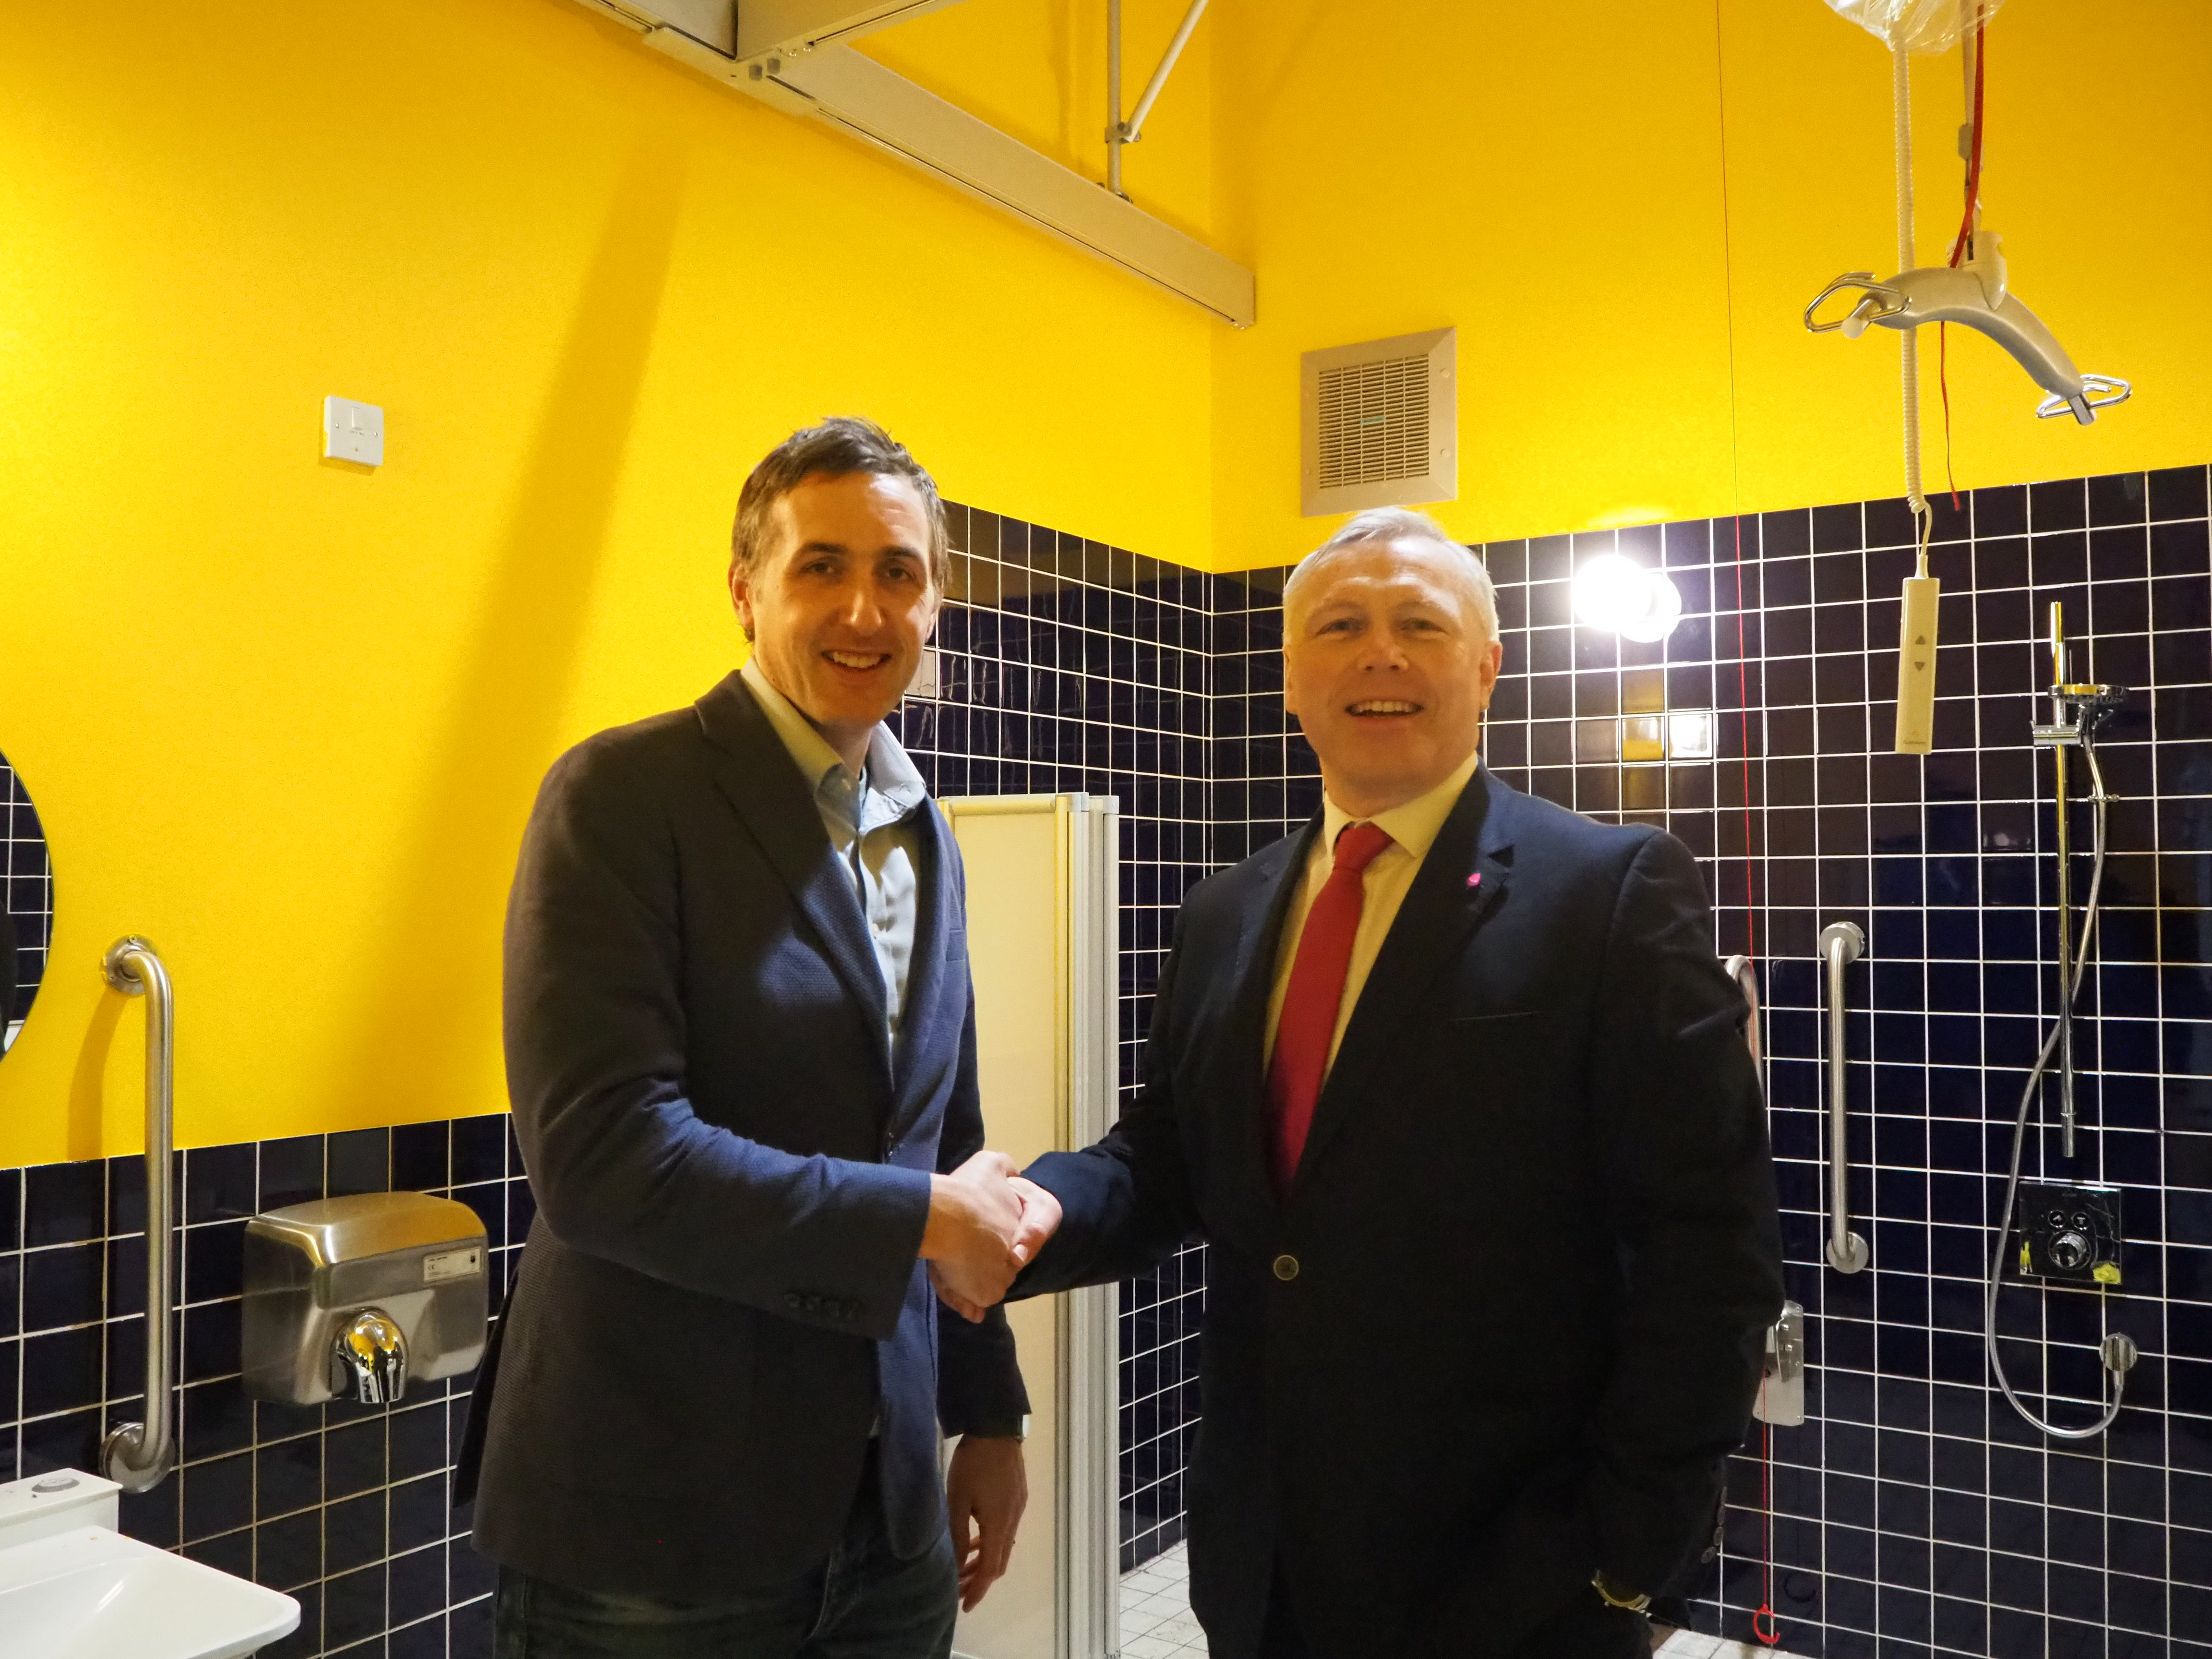 MK Community Foundation funding allows MK Gallery to build a Changing Places Toilet